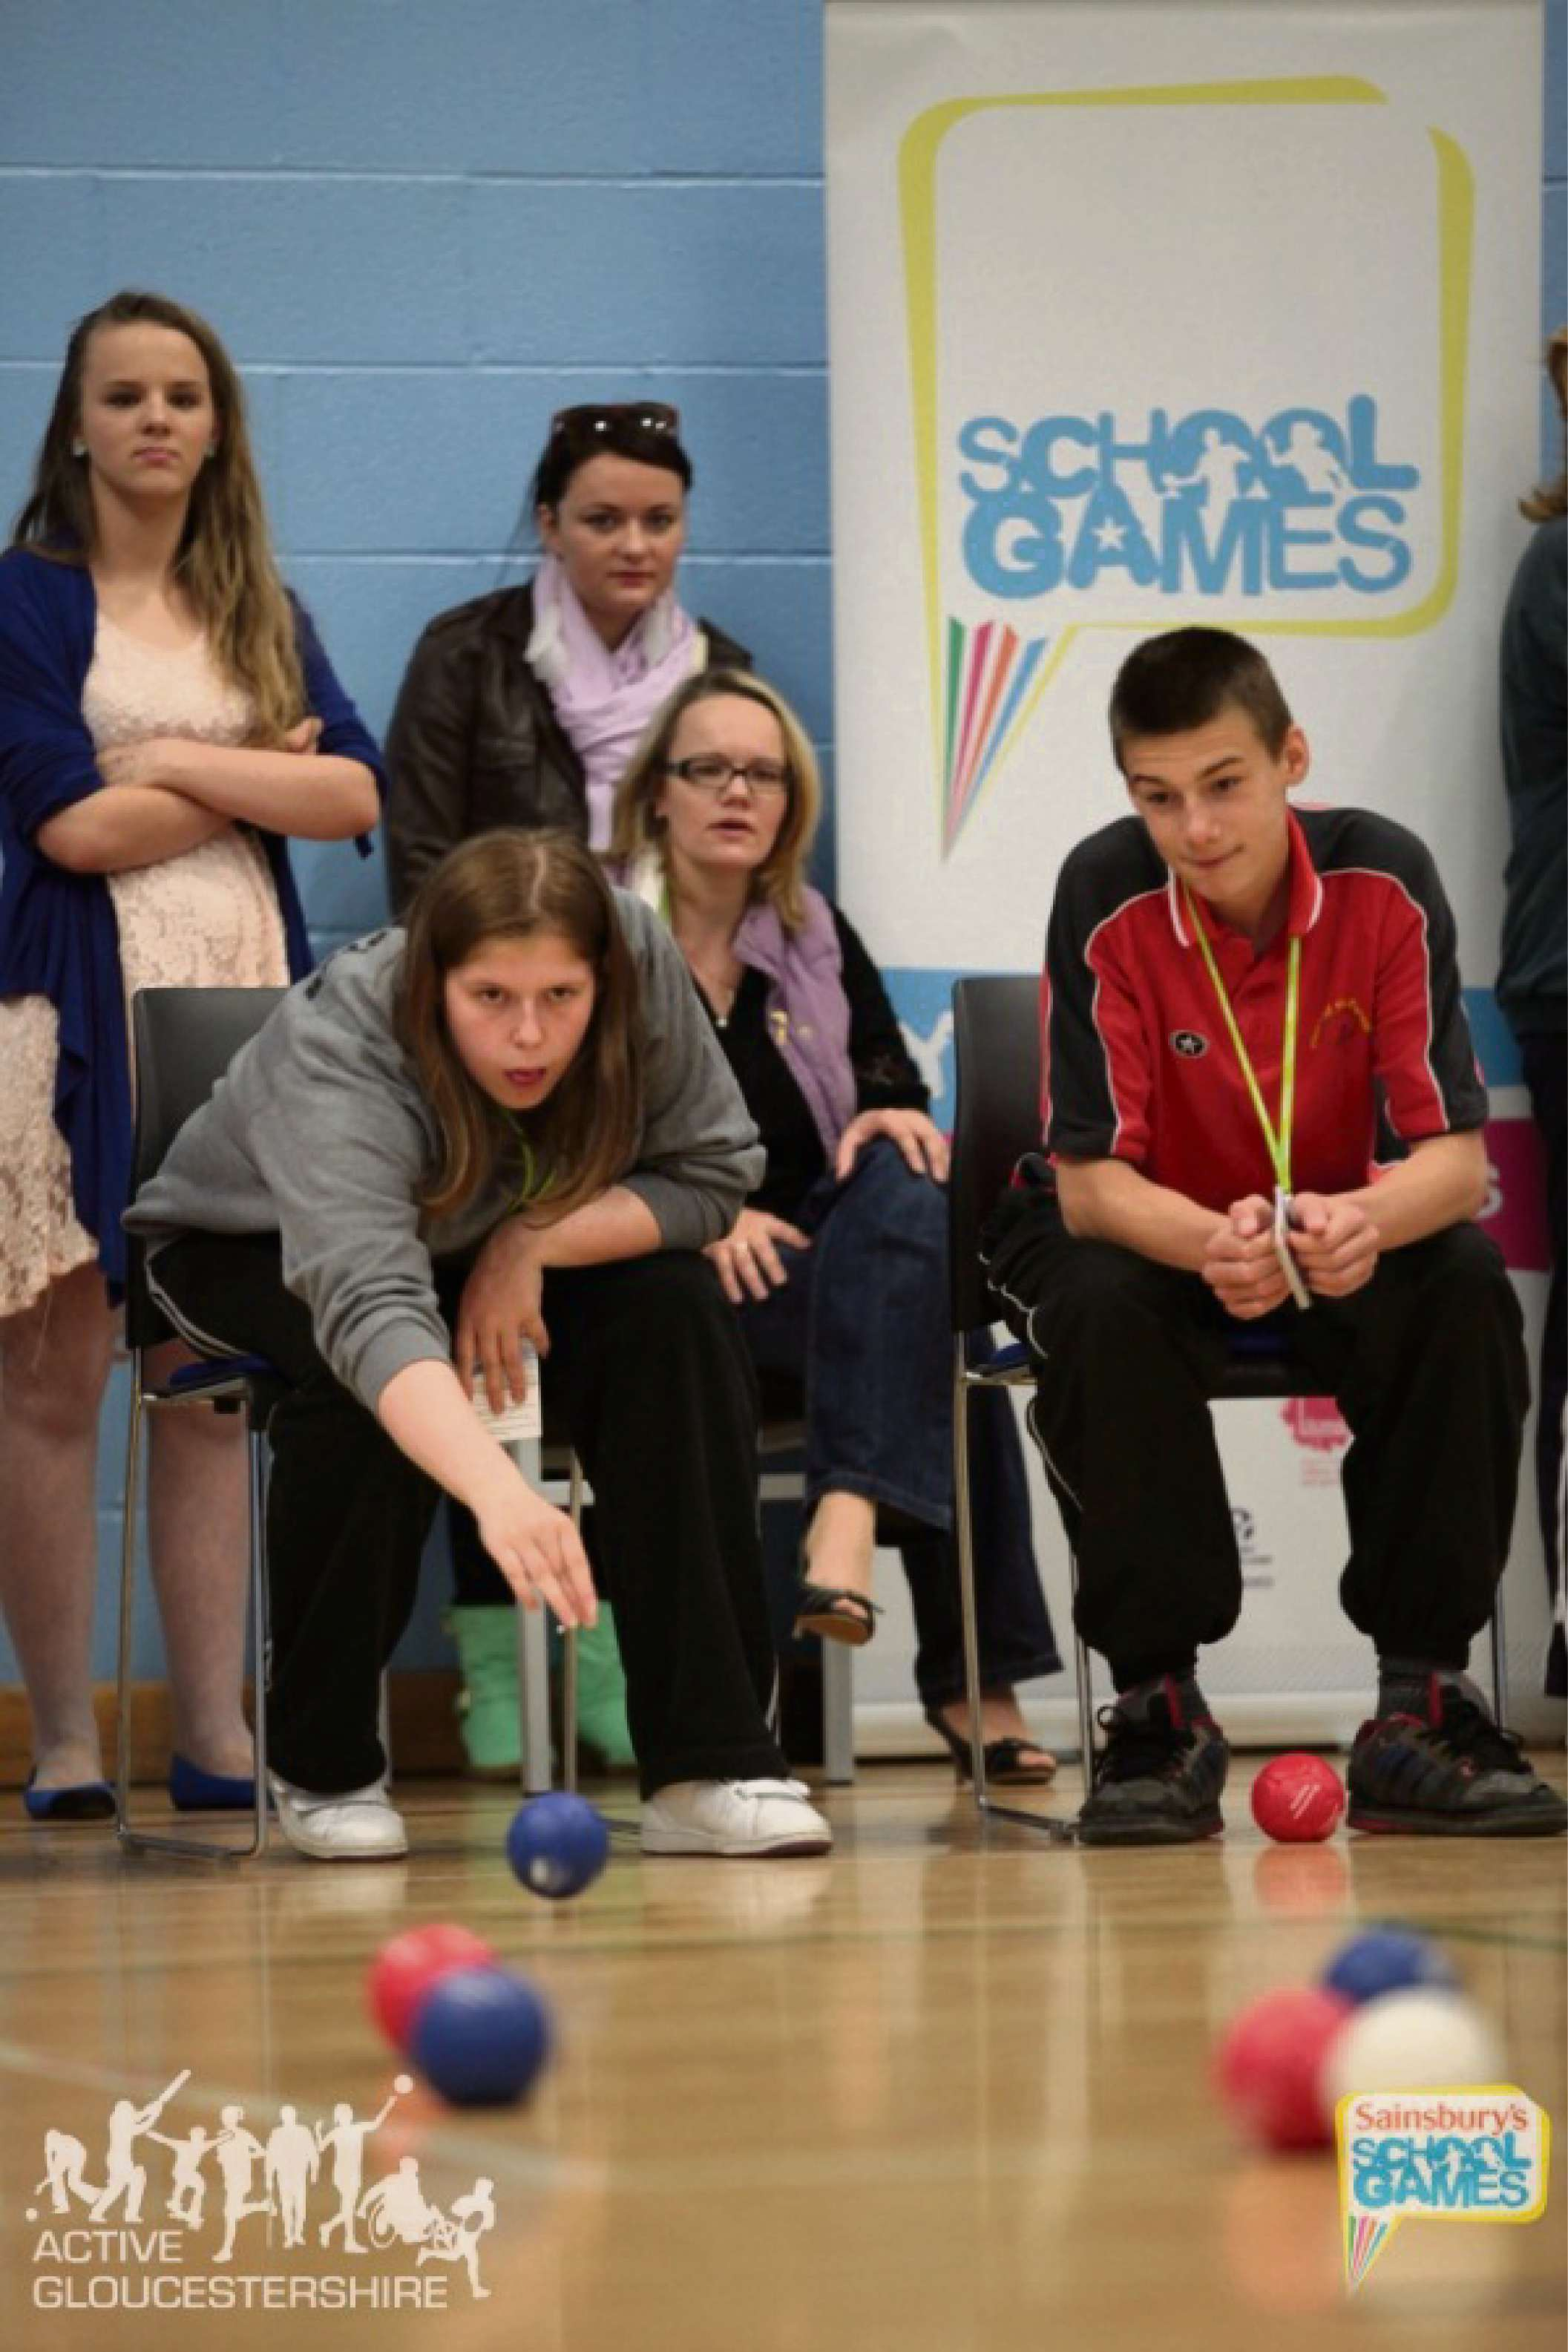 Action from the Gloucestershire School Games last year